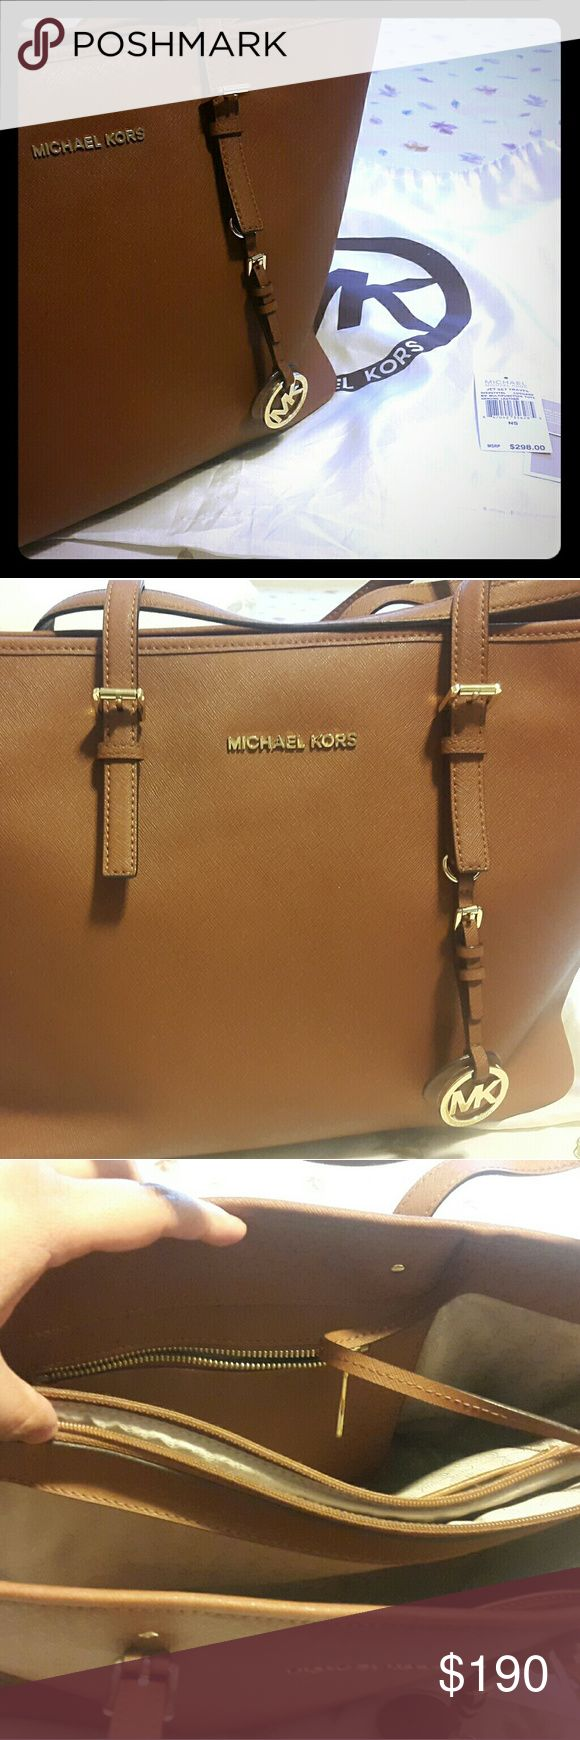 Michael Kors Jet Set Travel Large Chestnut Colored MK Jet Set Travel Purse comes with original dust bag. Purchased 1 year ago at 298$. Willing to bundle with Gucci Black Tote bag for 500$. I need the money to purchase a plane ticket to the Philippines. My dad died last week and I can't afford to buy ticket and send money for the funeral expense. Willing to negotiate. Thank you. Michael Kors Bags